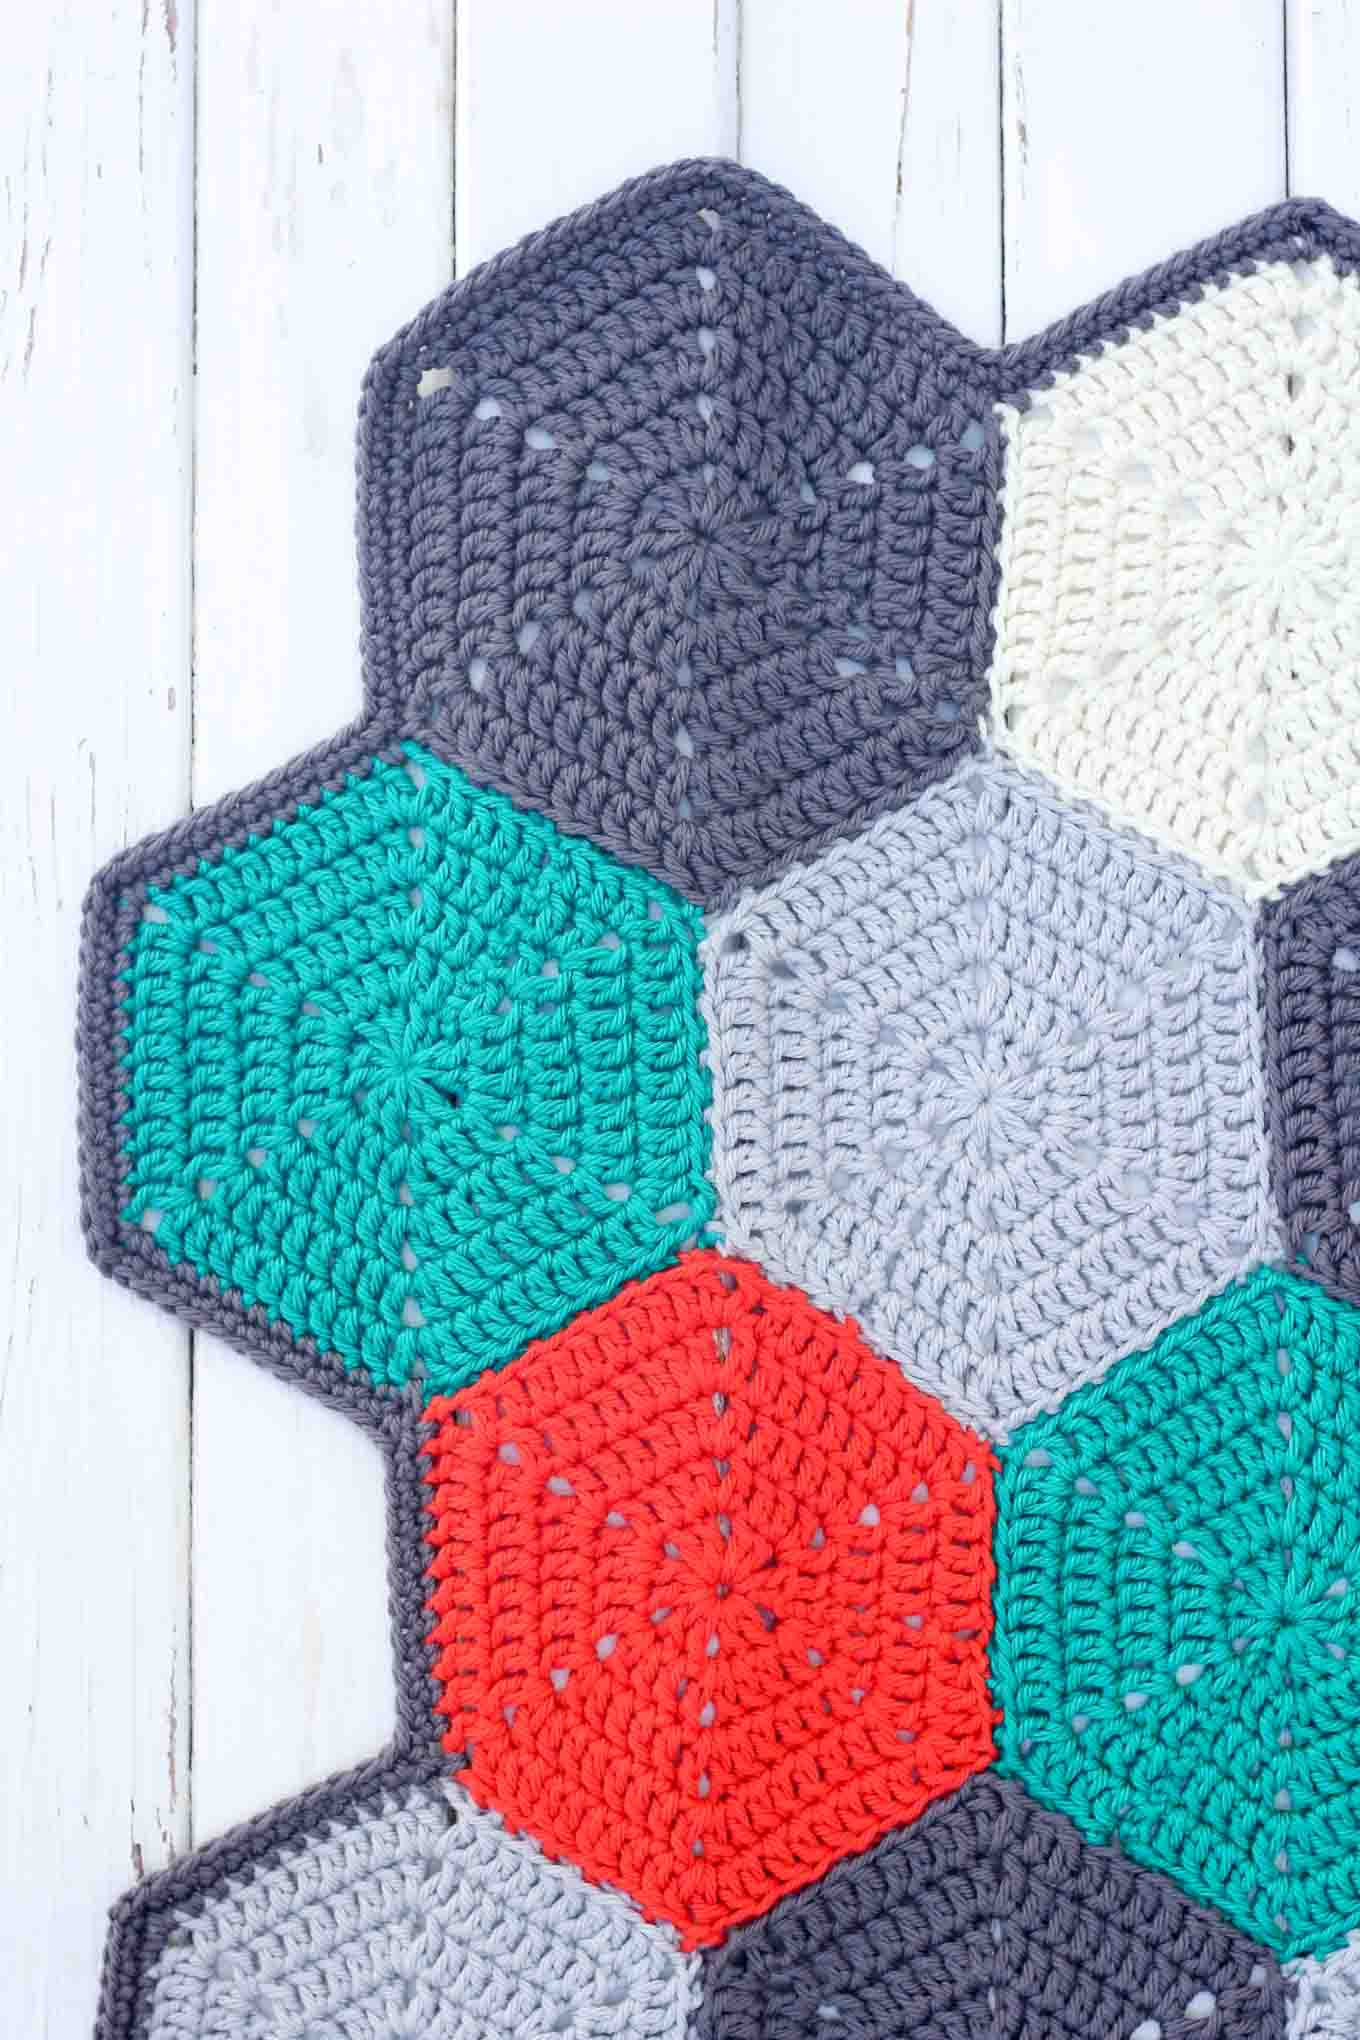 Crocheting Hexagons : This free crochet afghan pattern is customizable, so you can use it to ...